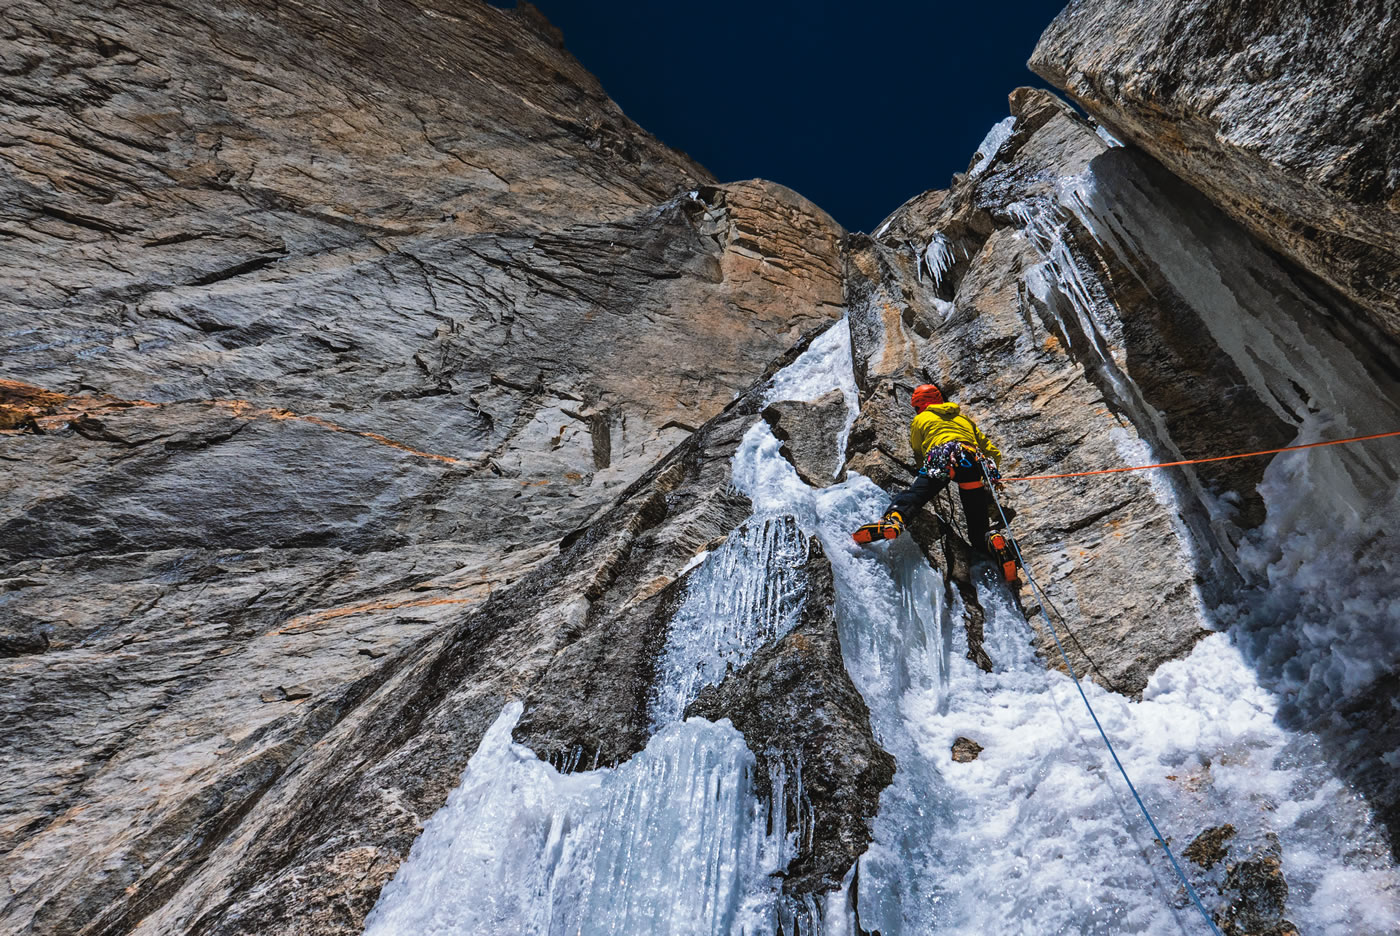 Pellissier on one of the increasingly slushy ice flows during the second day. Before Cerro Kishtwar, Prezelj, Kennedy and Novak had acclimatized by making the first ascent of the south ridge (D+, 1400m) of Chomochior (6278m). [Photo] Marko Prezelj